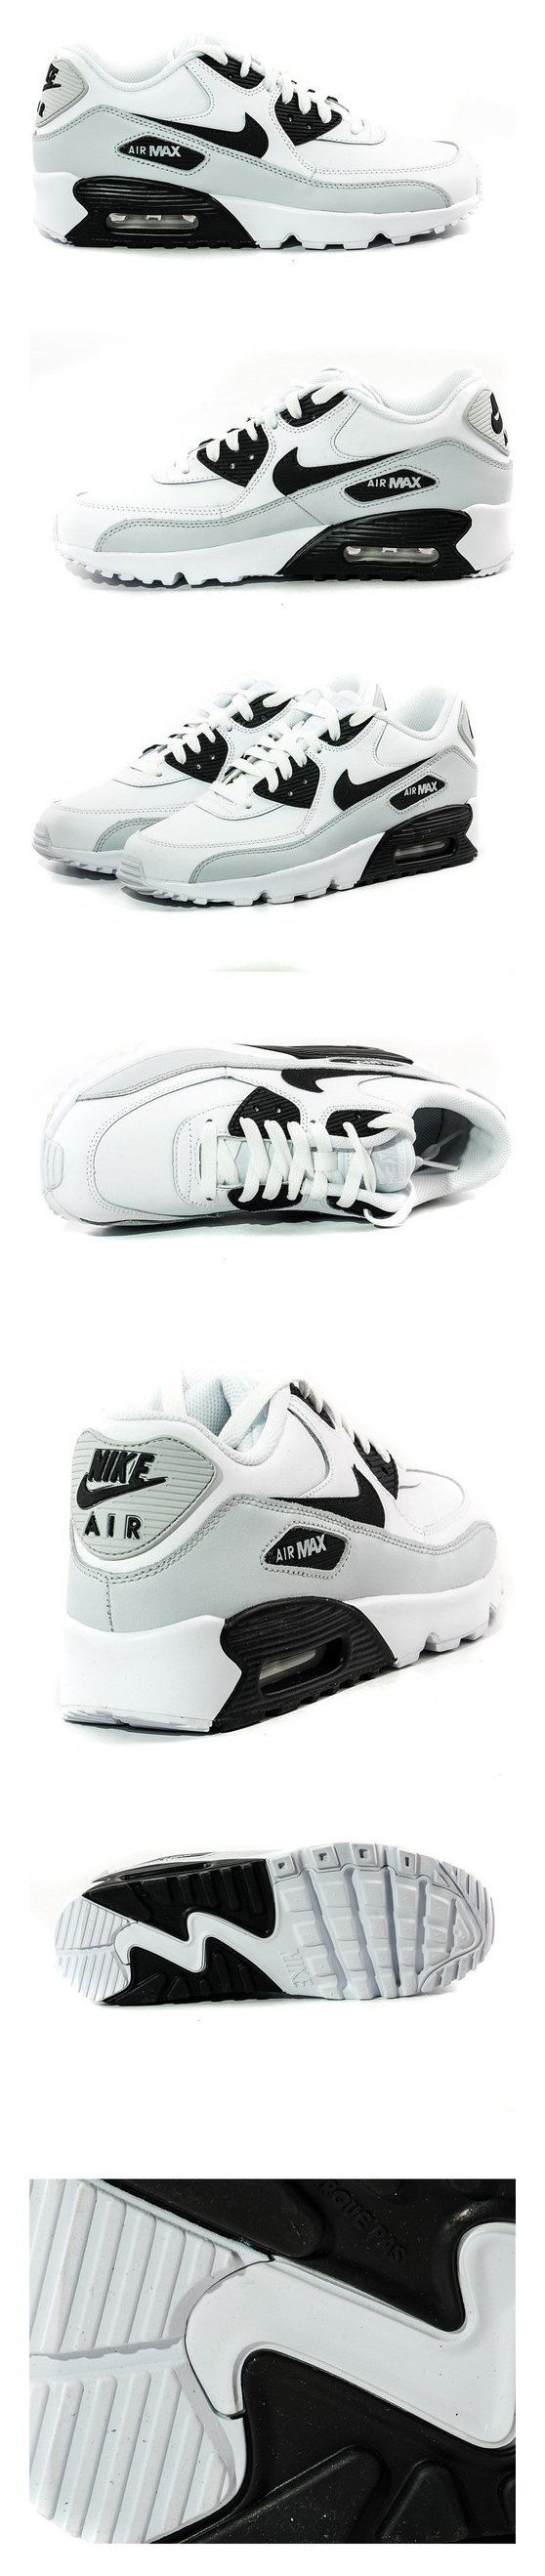 $90 - Nike Youths Air Max 90 White Black Leather Trainers 35.5 EU #shoes #nike #sneakers #girls #departments #boys